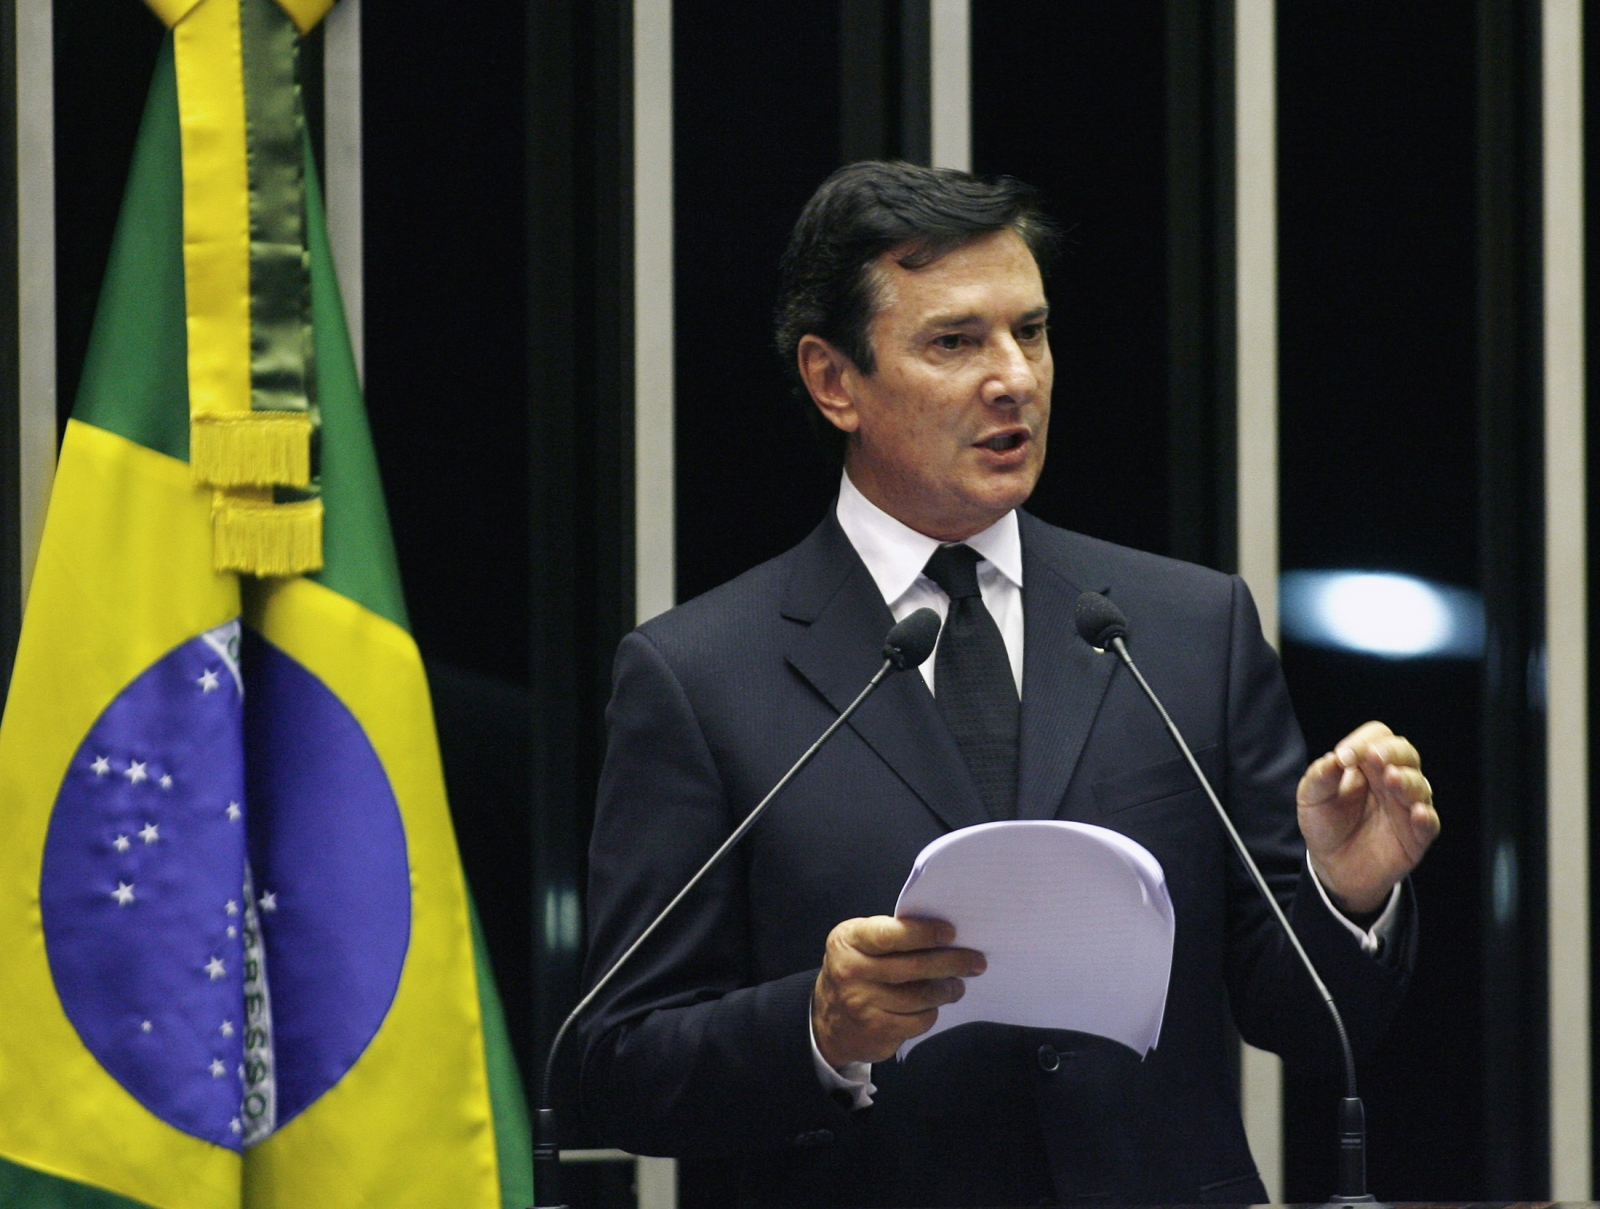 Brazil's former president Fernando Collor de Mello speaks at Federal Senate for the first time after becoming Senator in Brasilia March 15, 2007.